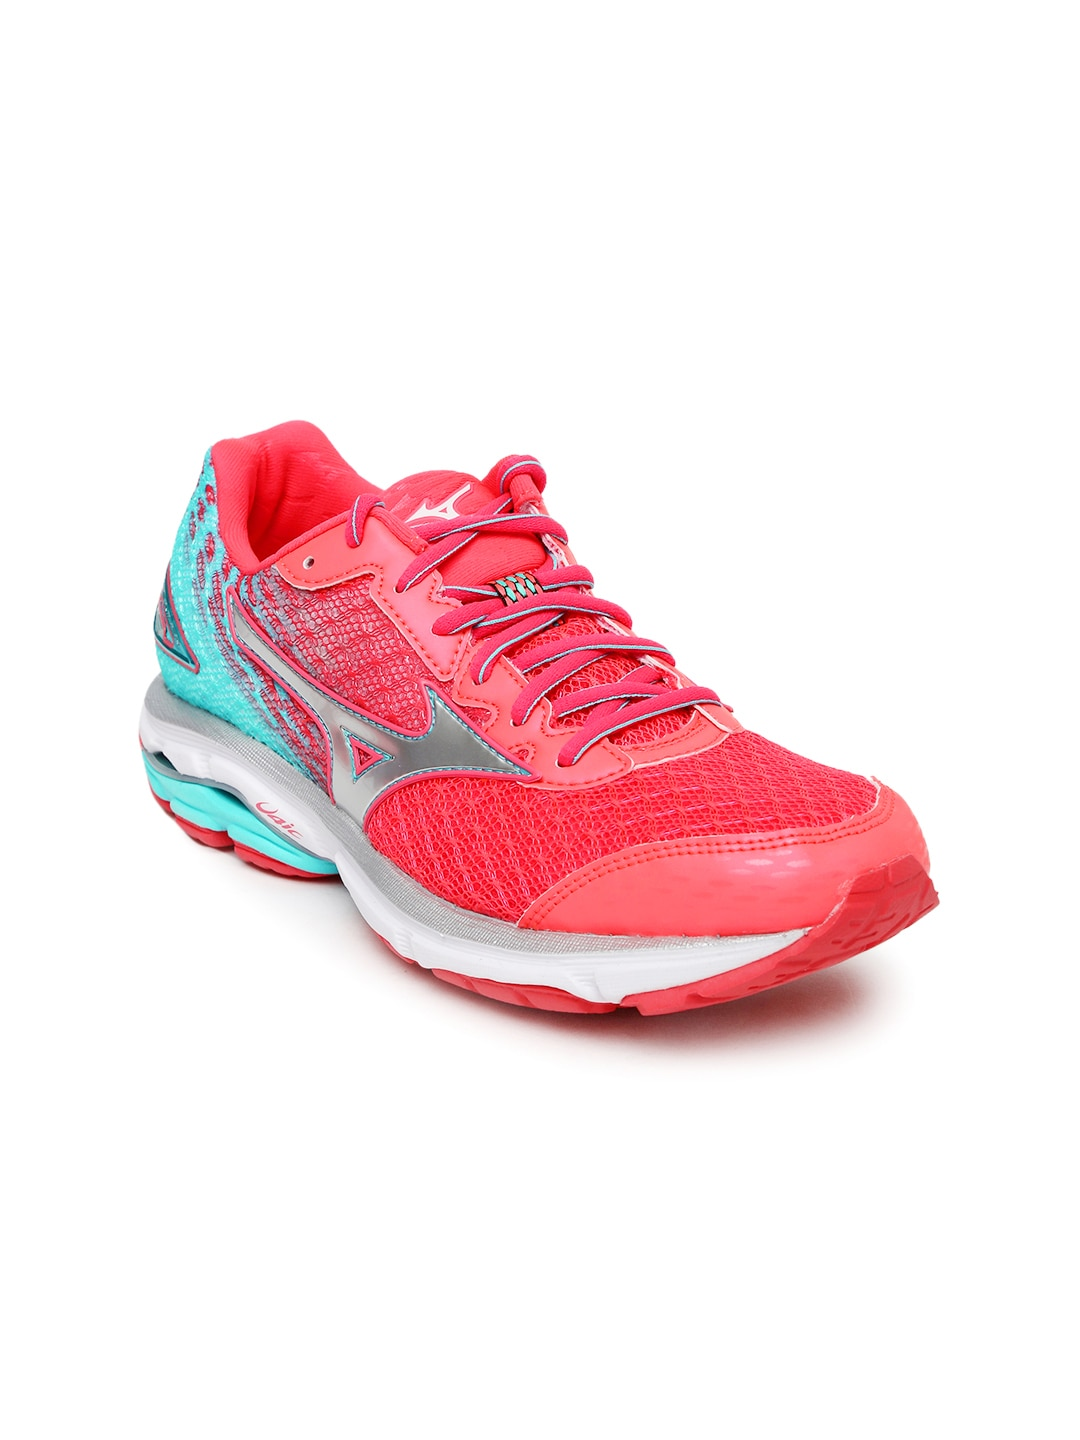 Sports Shoes for Women - Buy Women Sports Shoes Online  5a22b0d7a